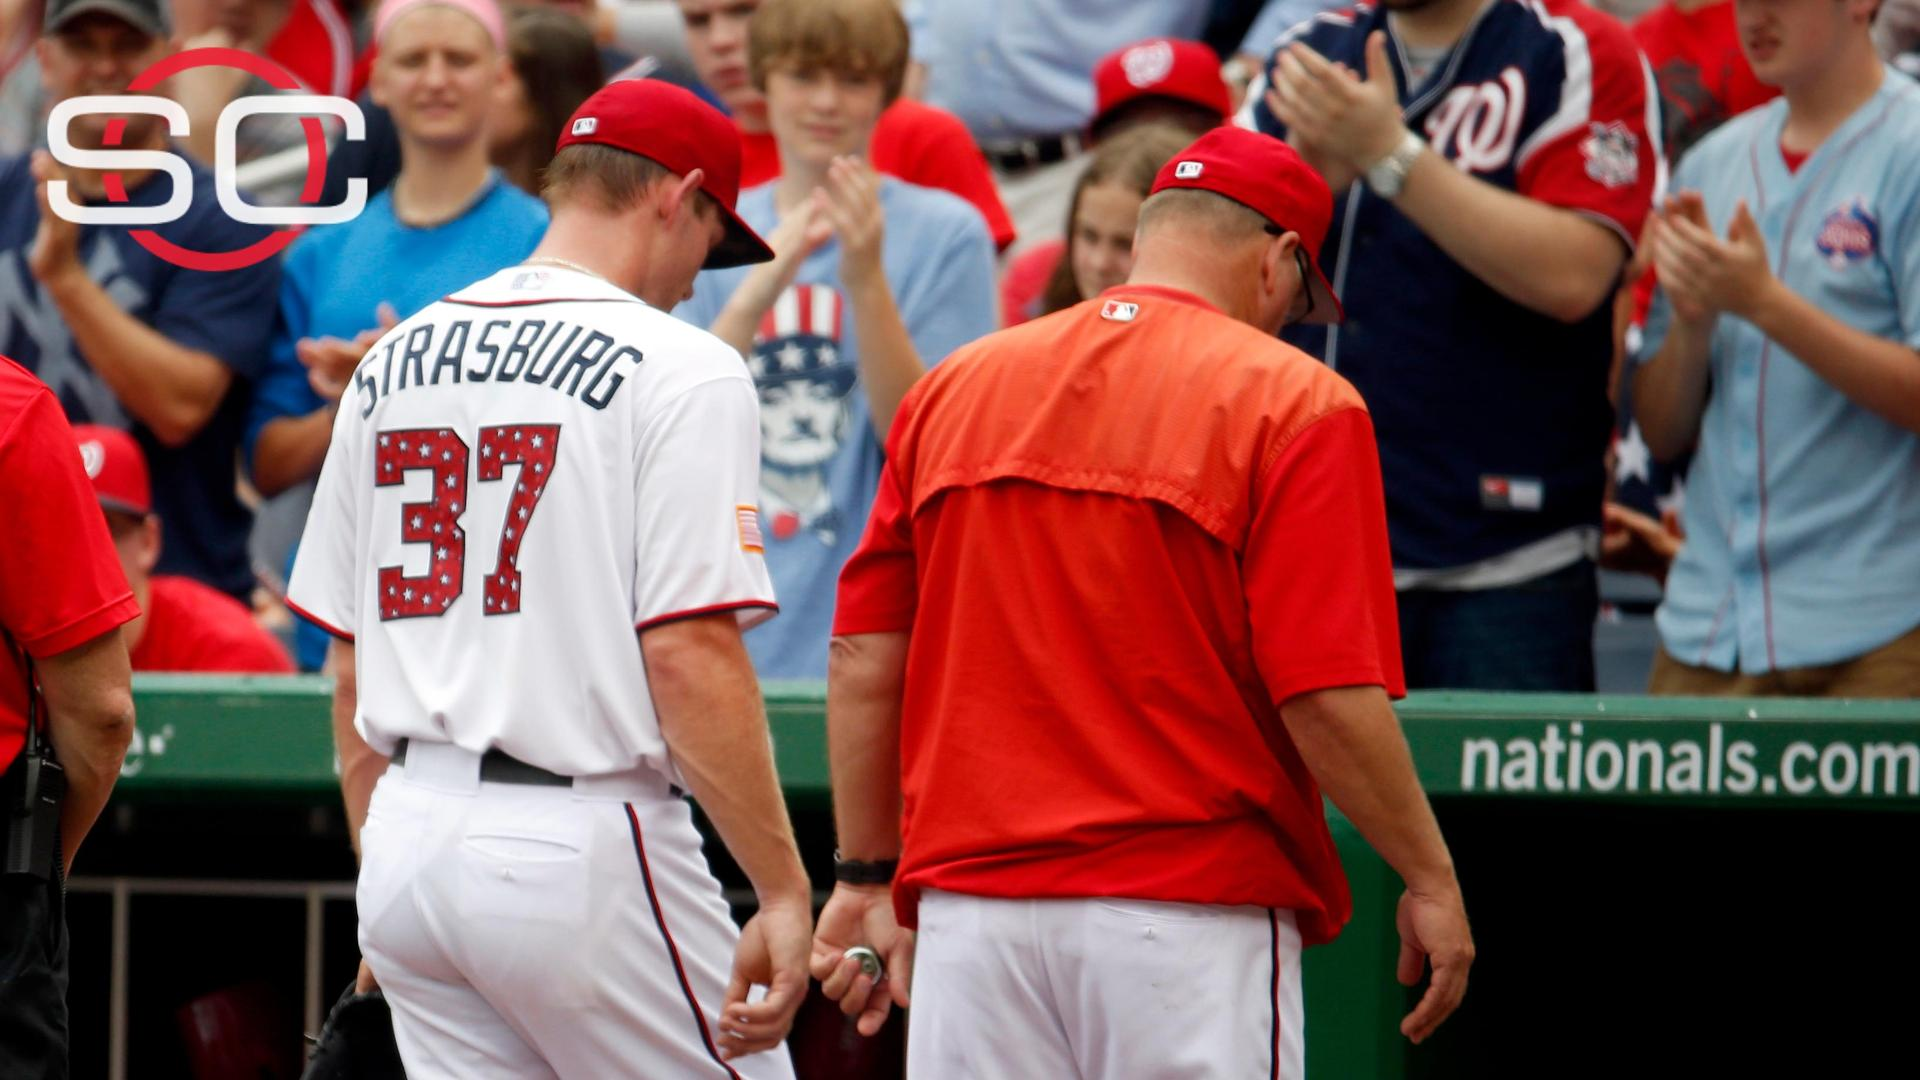 Nats put Strasburg on DL with left oblique strain